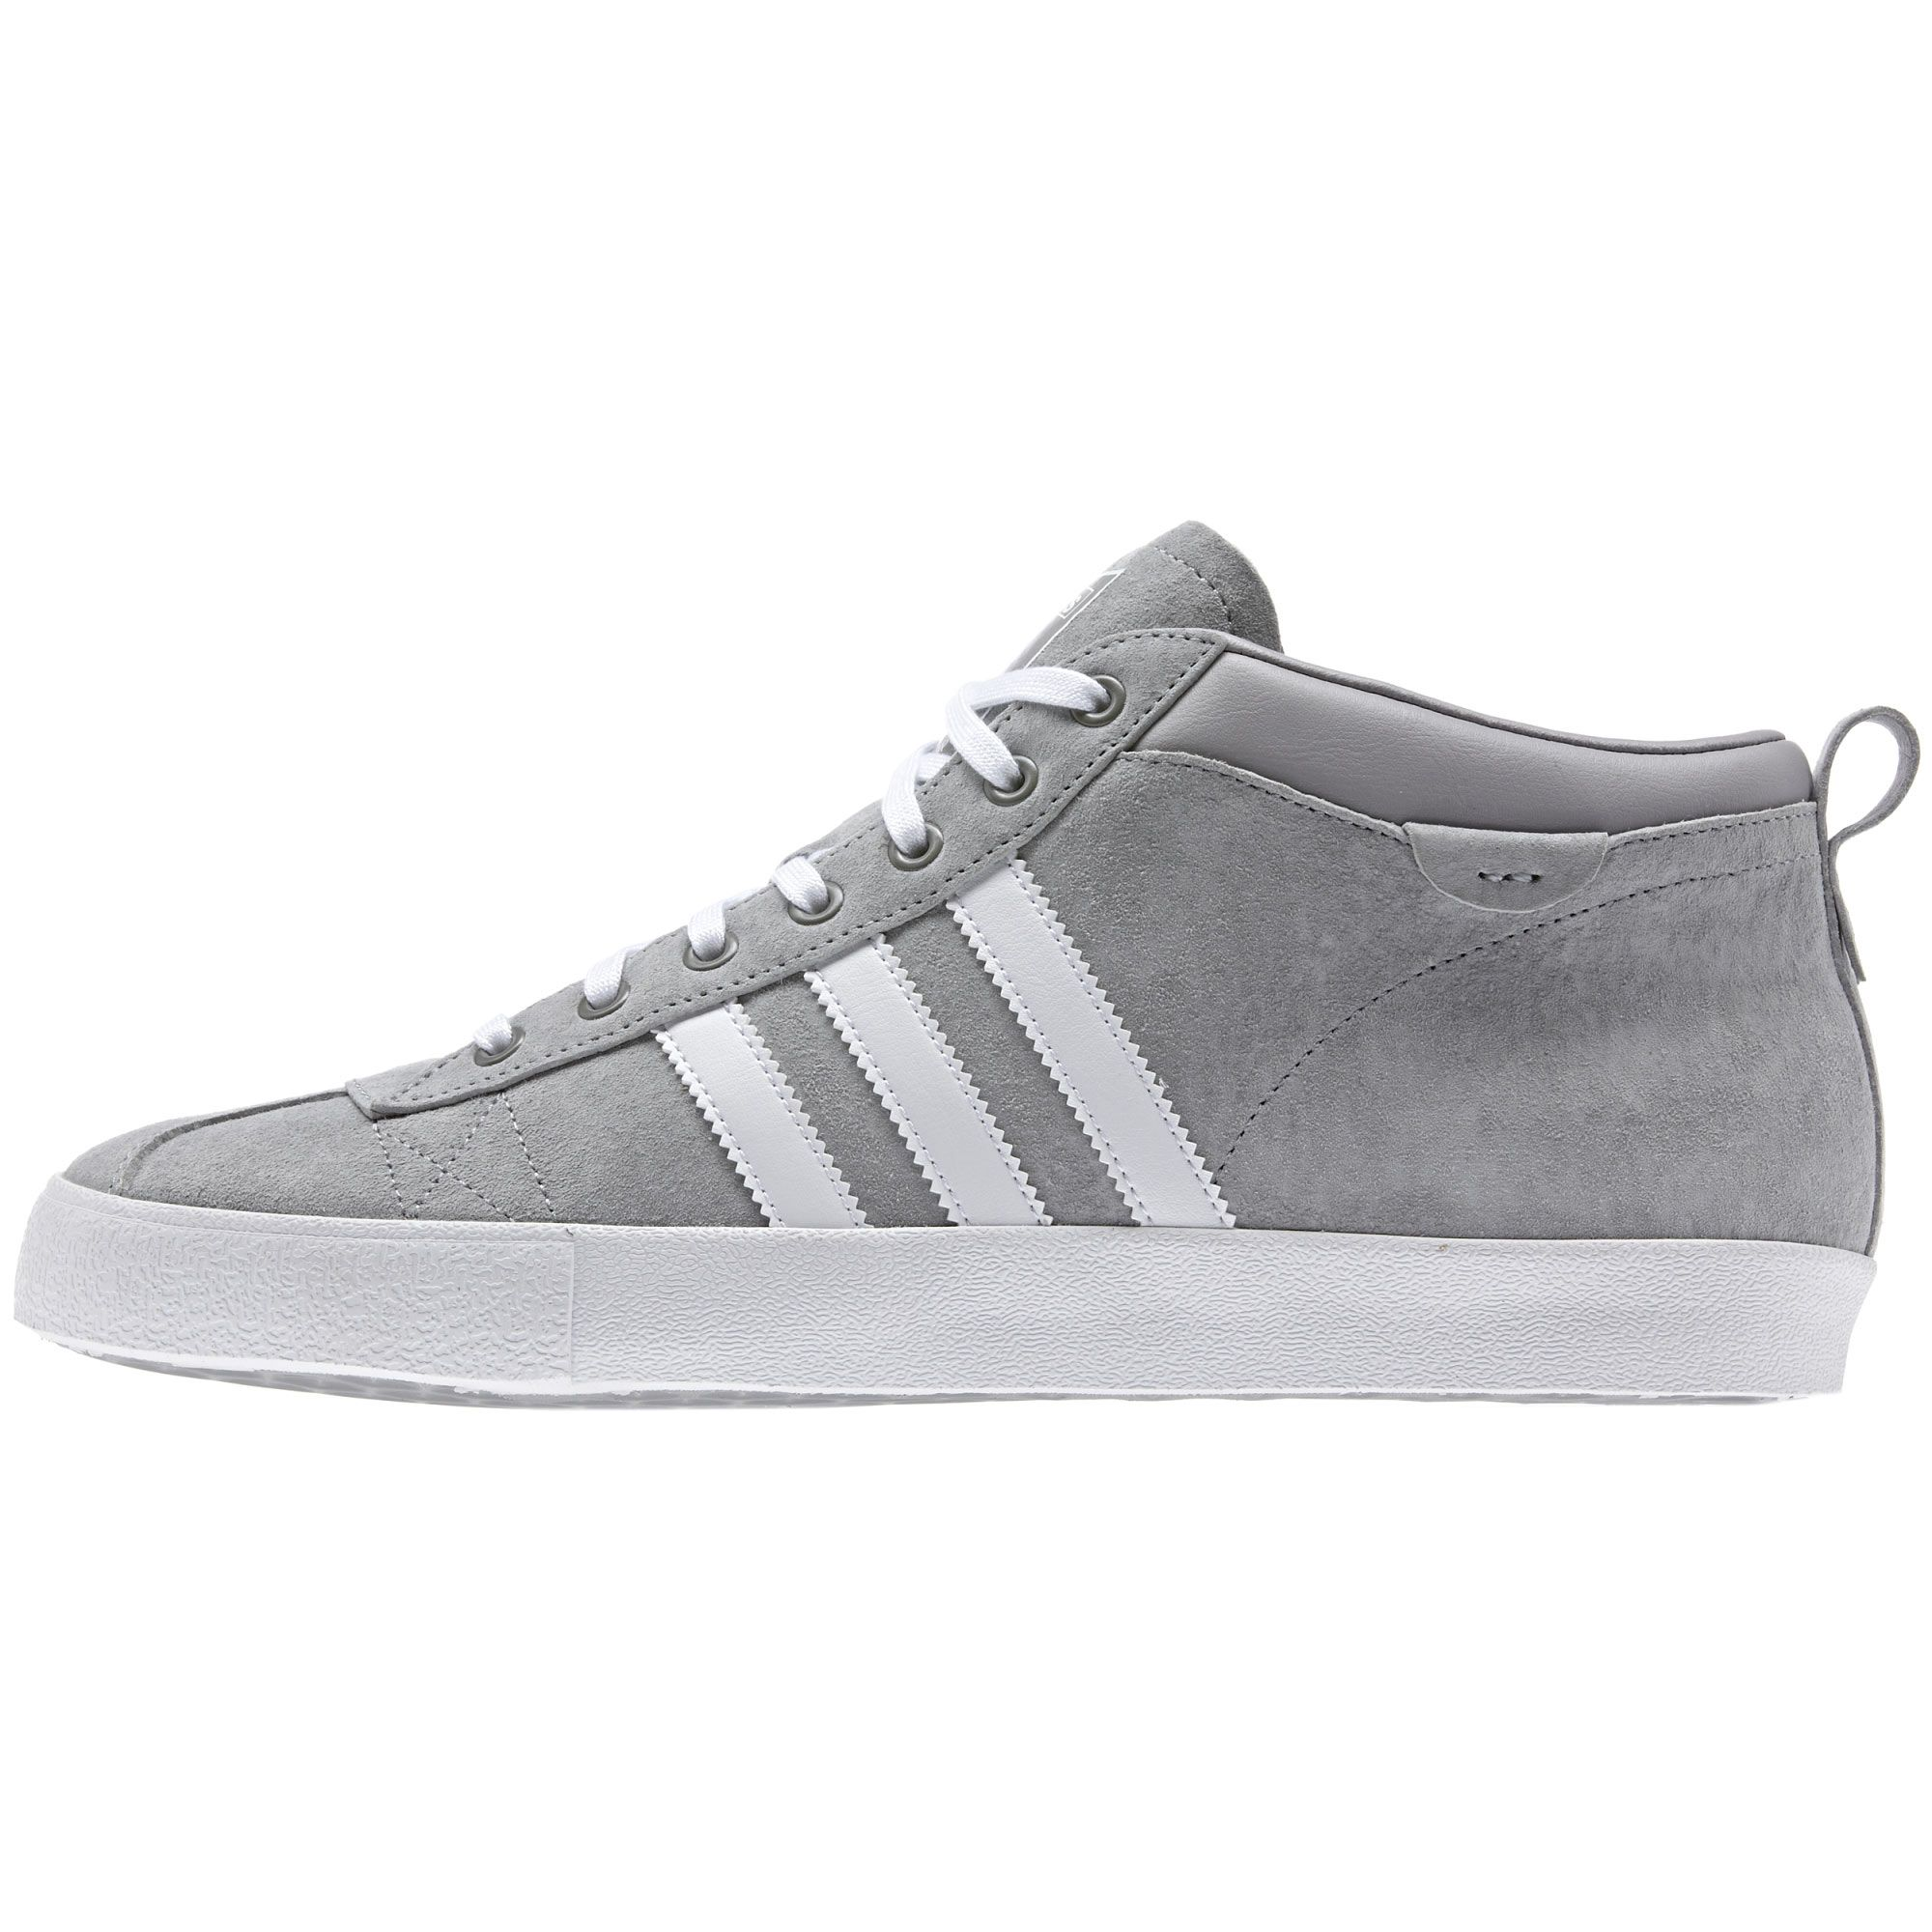 mens white adidas gazelle trainers nz